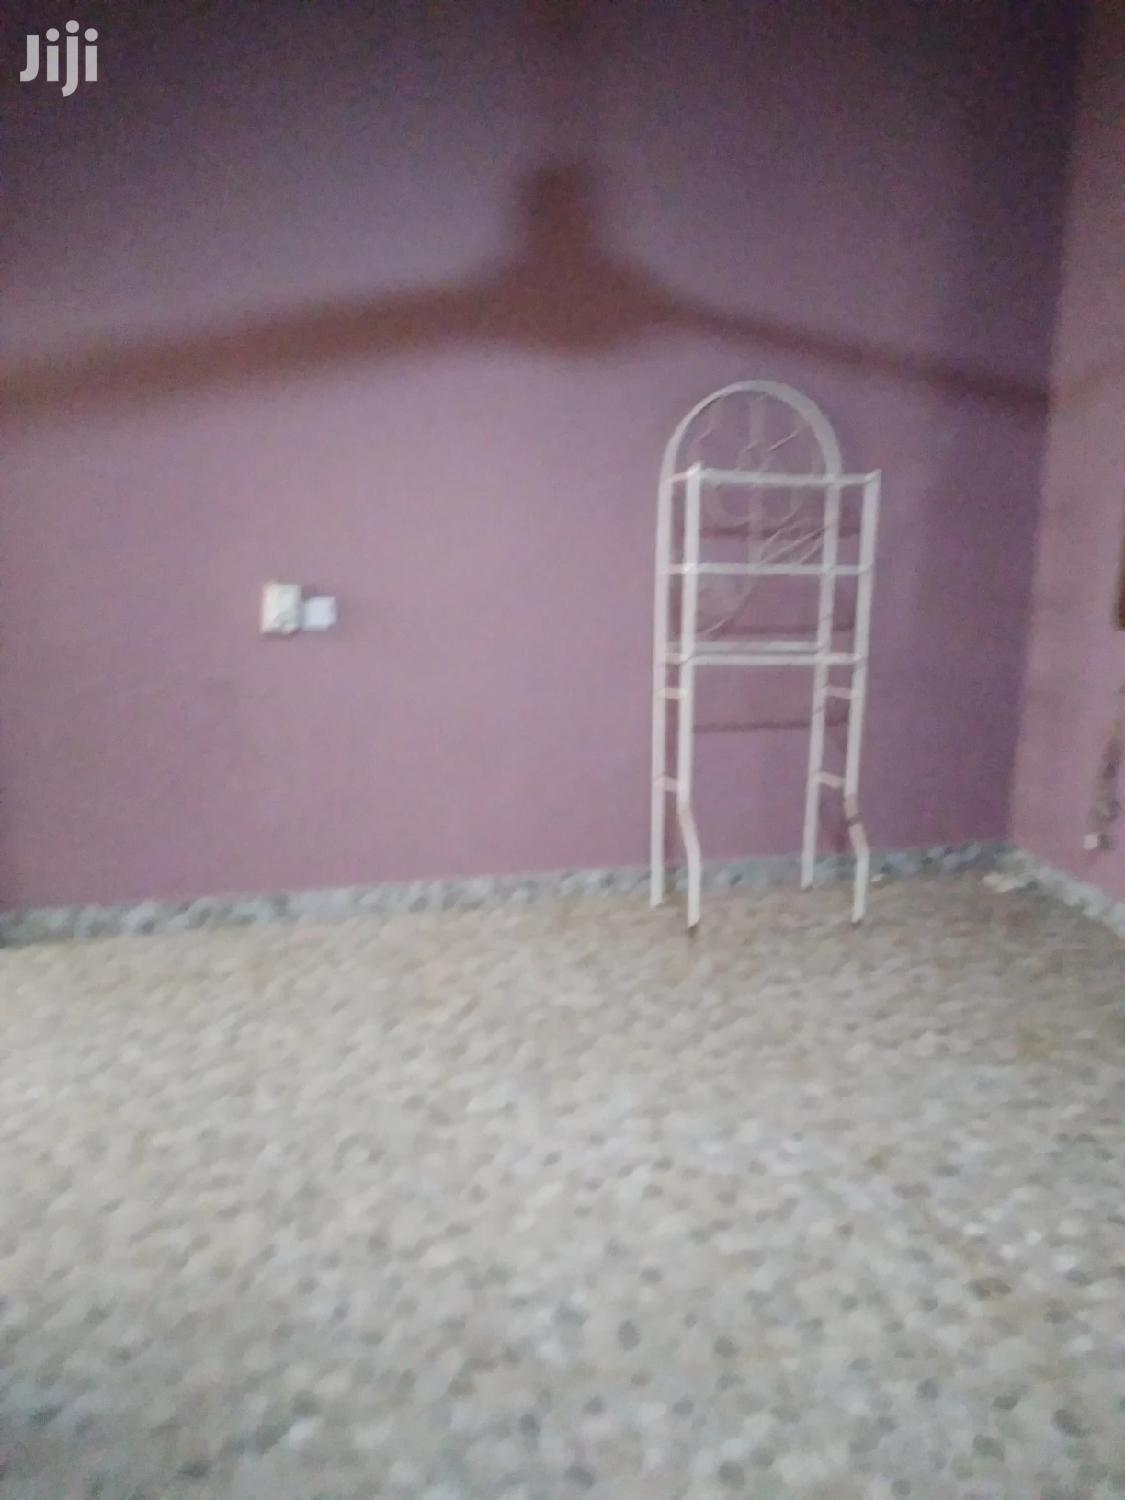 Executive Single Room Self Contain For Rent At Spintex Road   Houses & Apartments For Rent for sale in Airport Residential Area, Greater Accra, Ghana